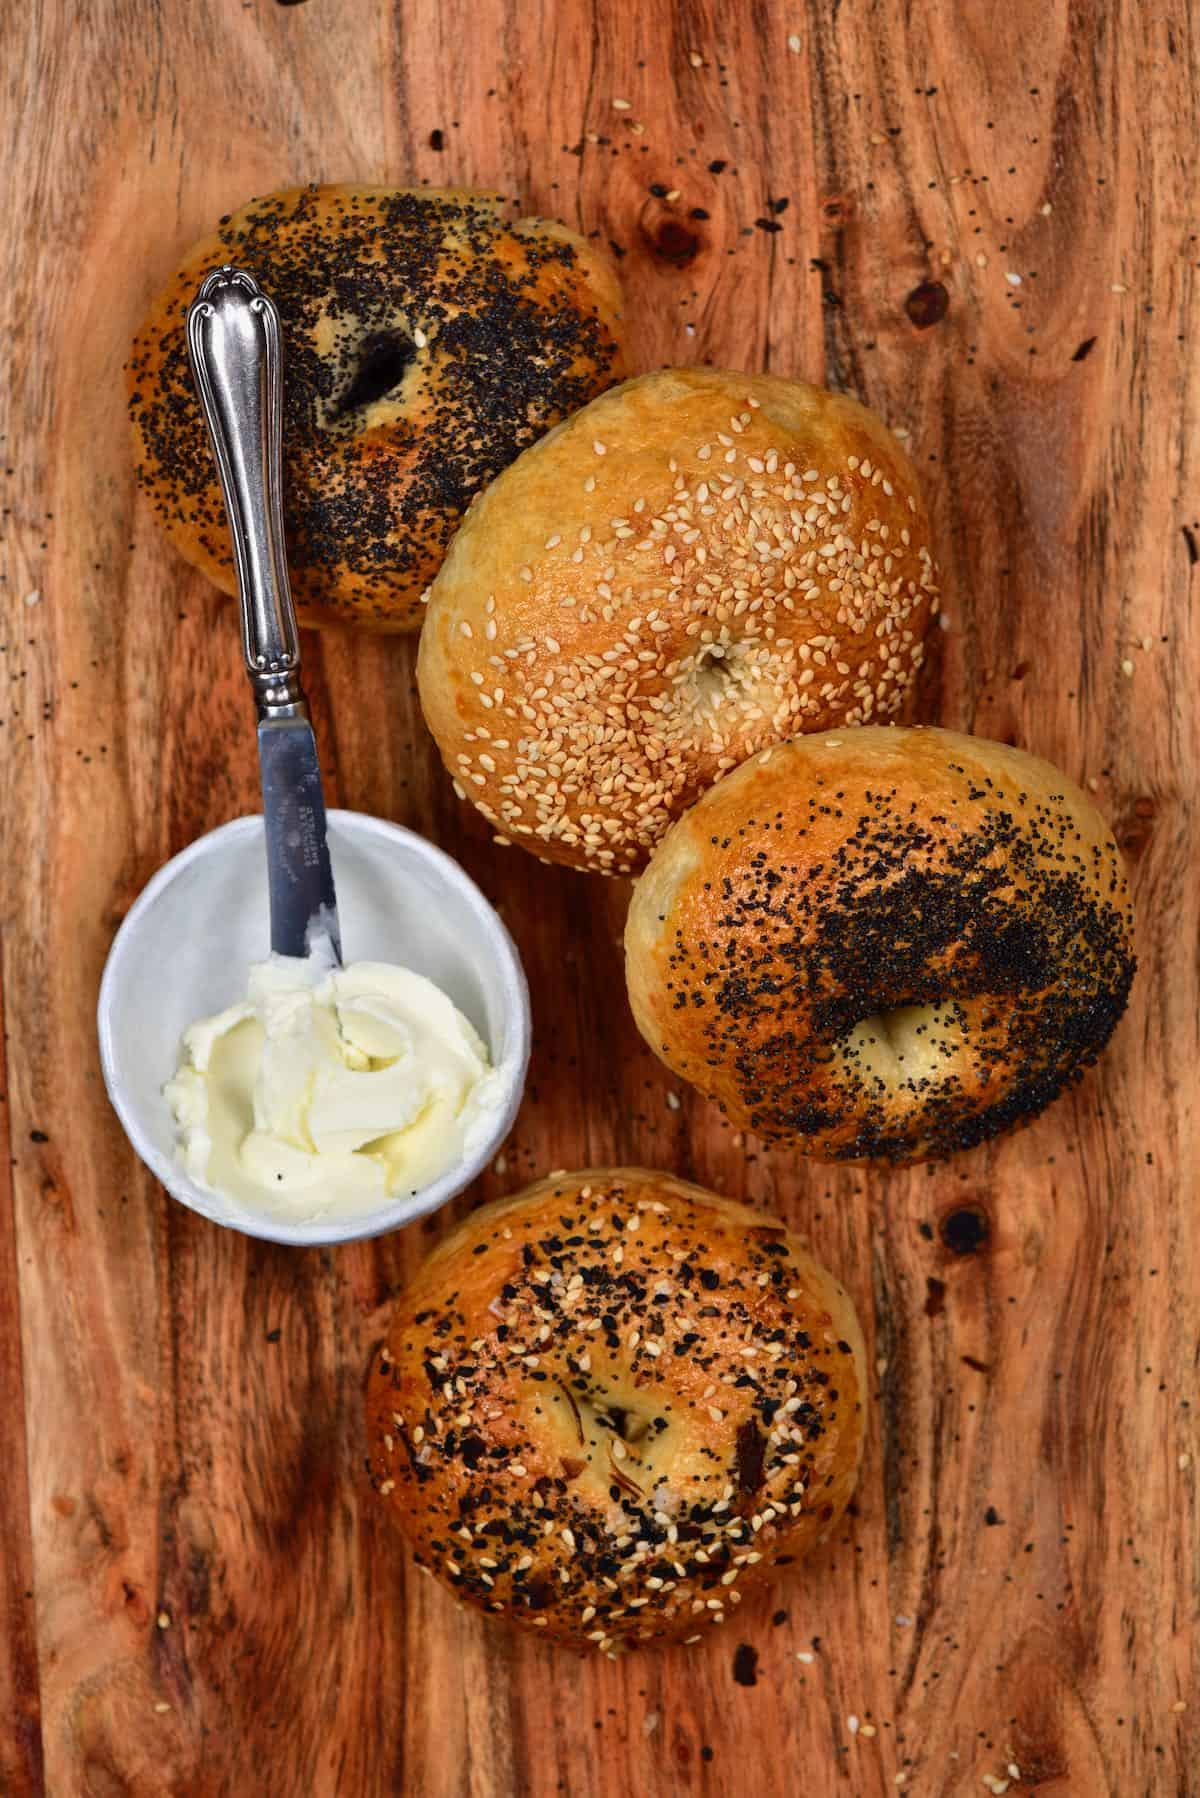 Four bagels and a bowl with cream cheese and knife